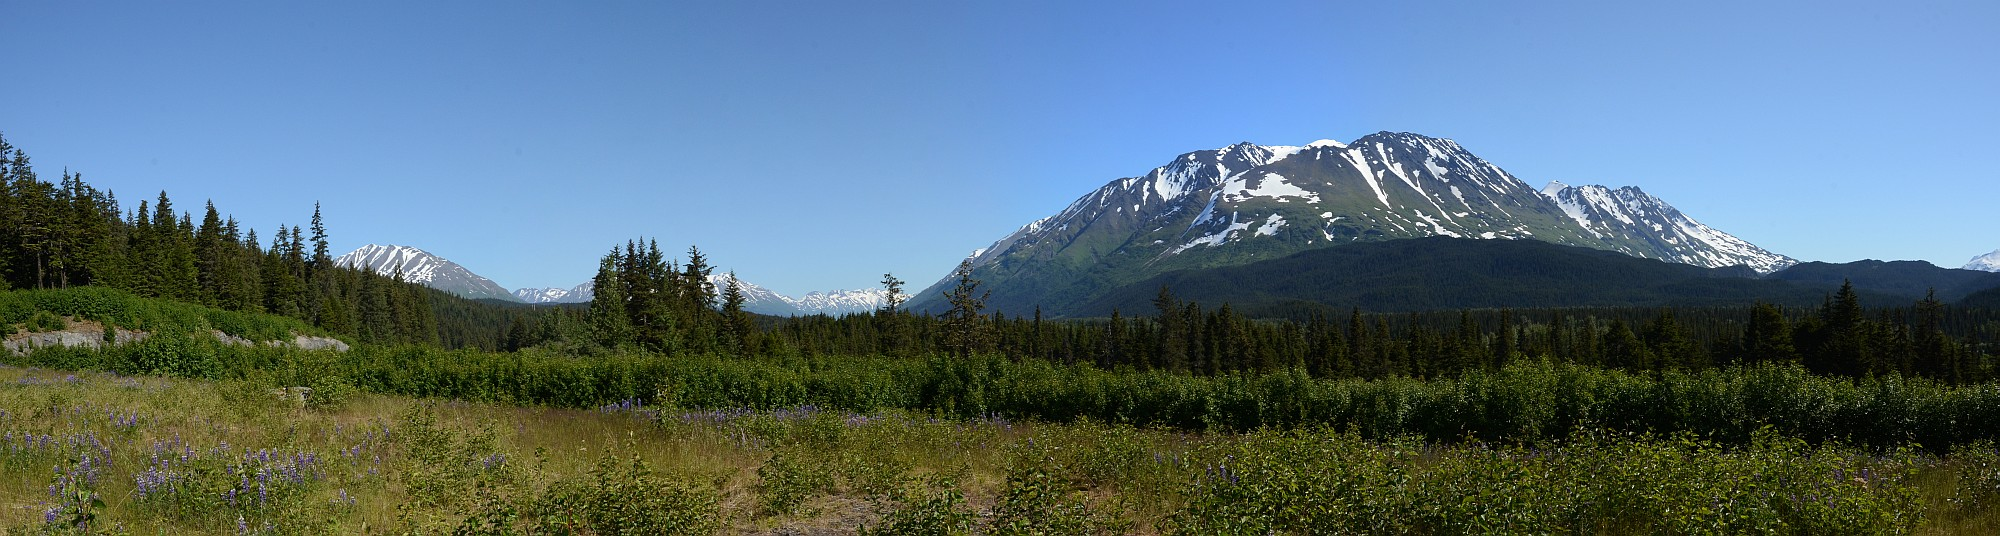 Chugach-National Forest Panorama